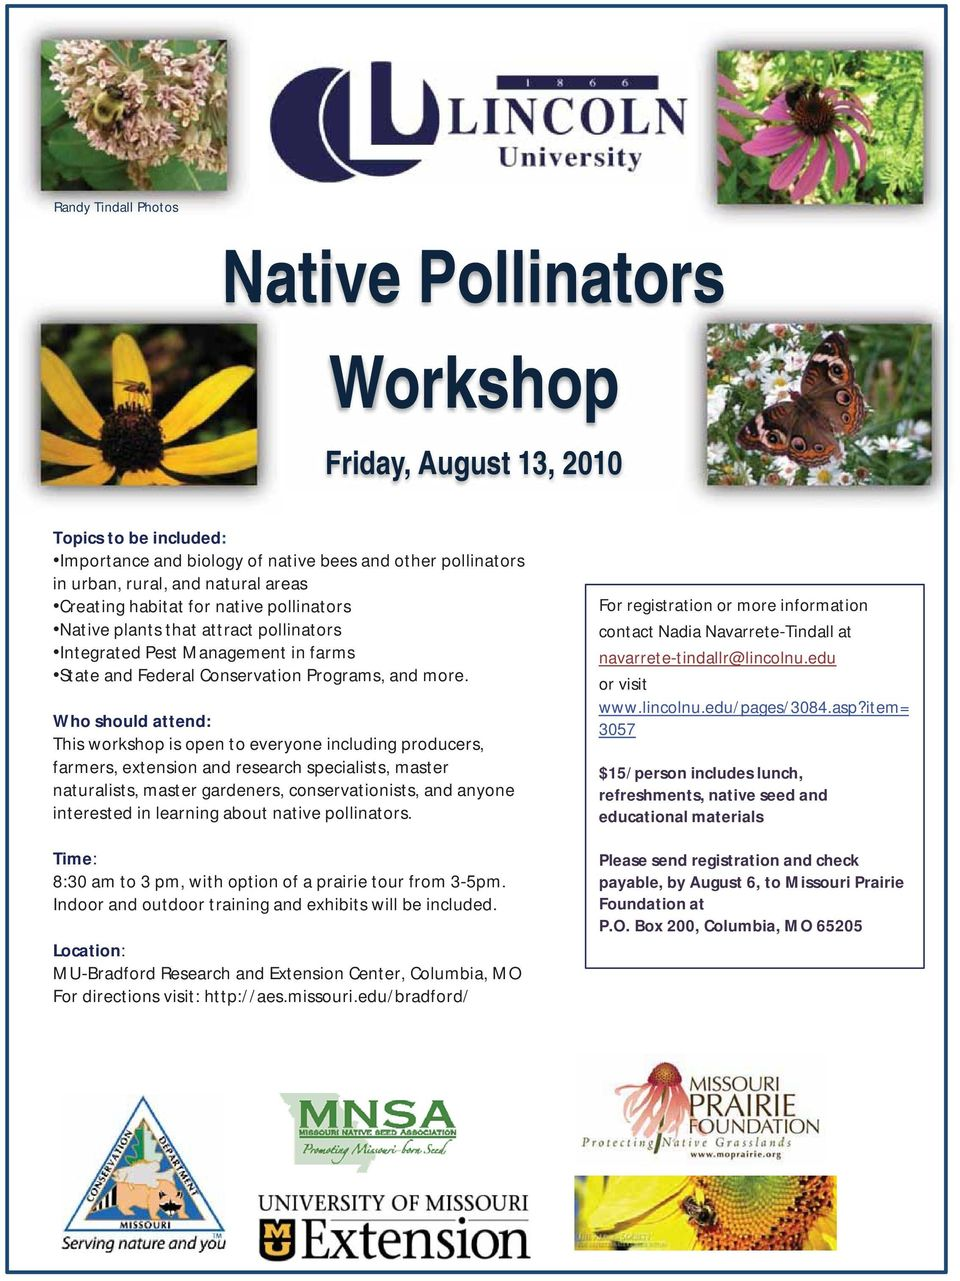 Who should attend: This workshop is open to everyone including producers, farmers, extension and research specialists, master naturalists, master gardeners, conservationists, and anyone interested in